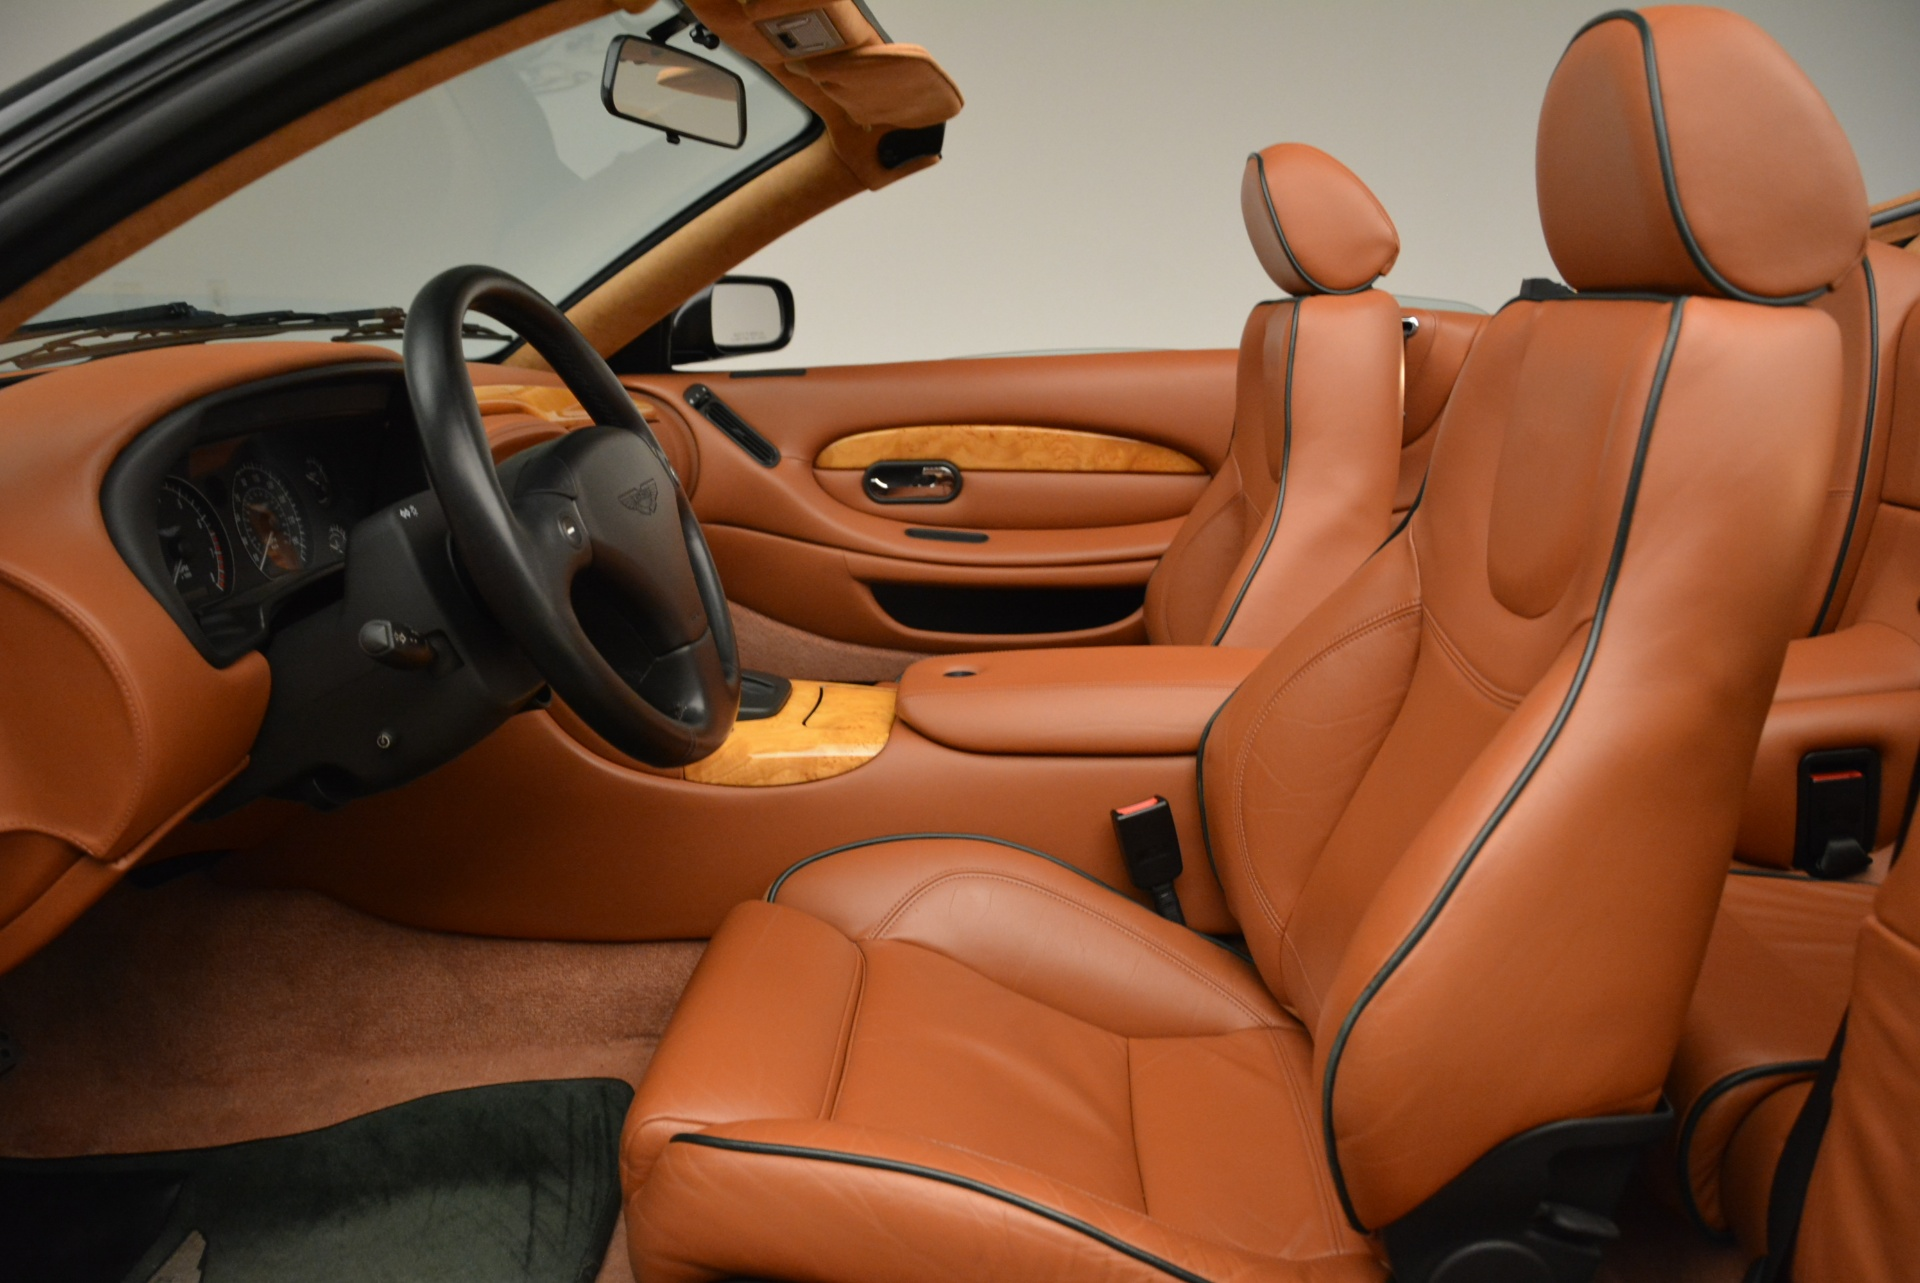 Used 2003 Aston Martin DB7 Vantage Volante For Sale In Westport, CT 2084_p23